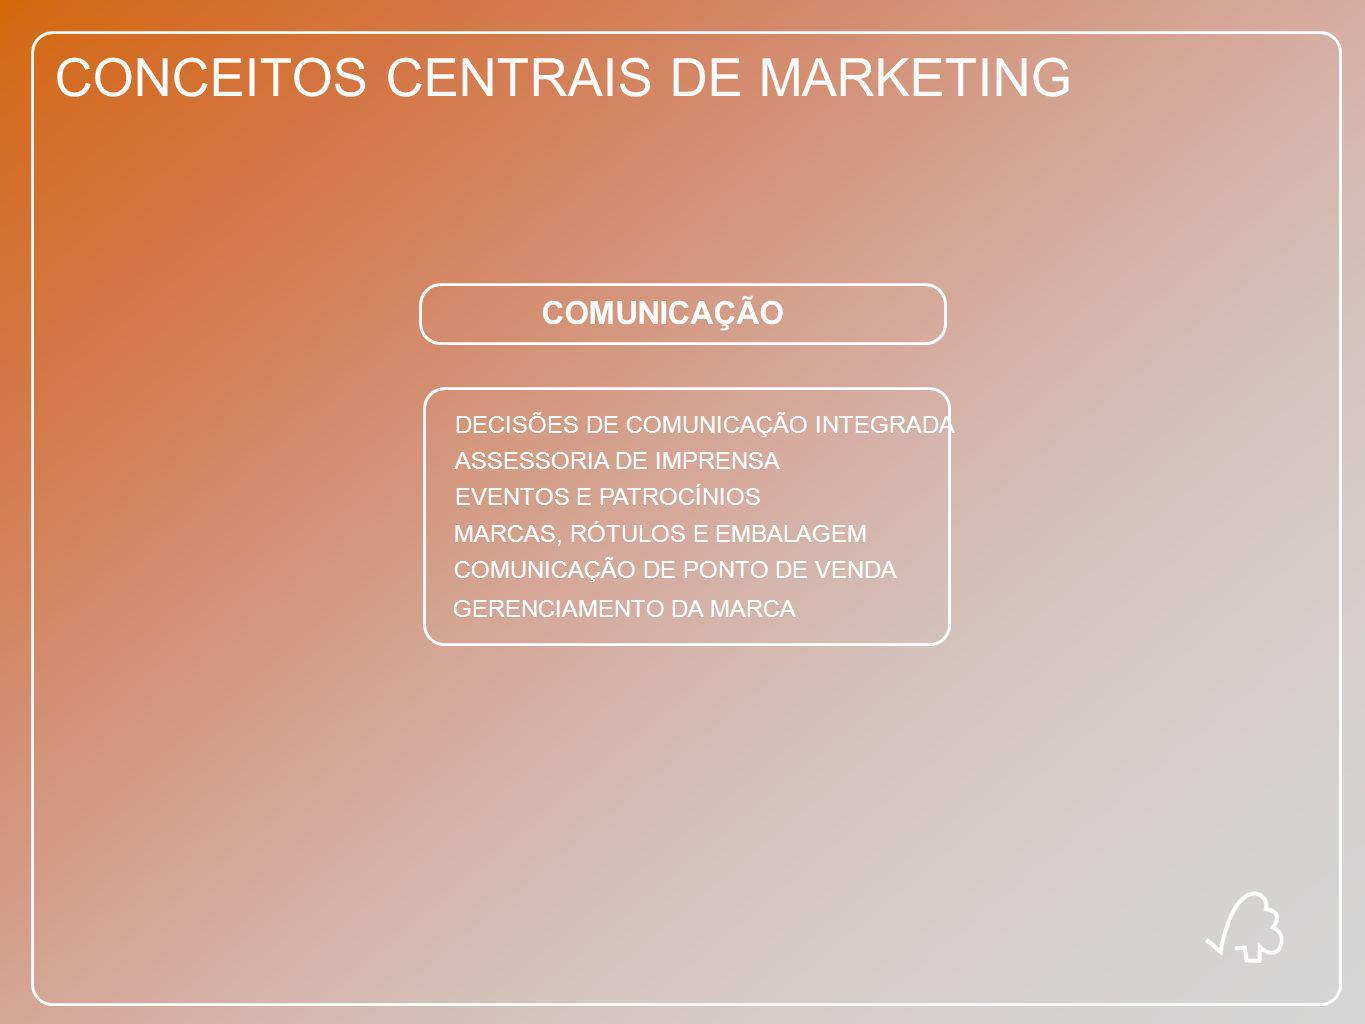 CONCEITOS CENTRAIS DE MARKETING